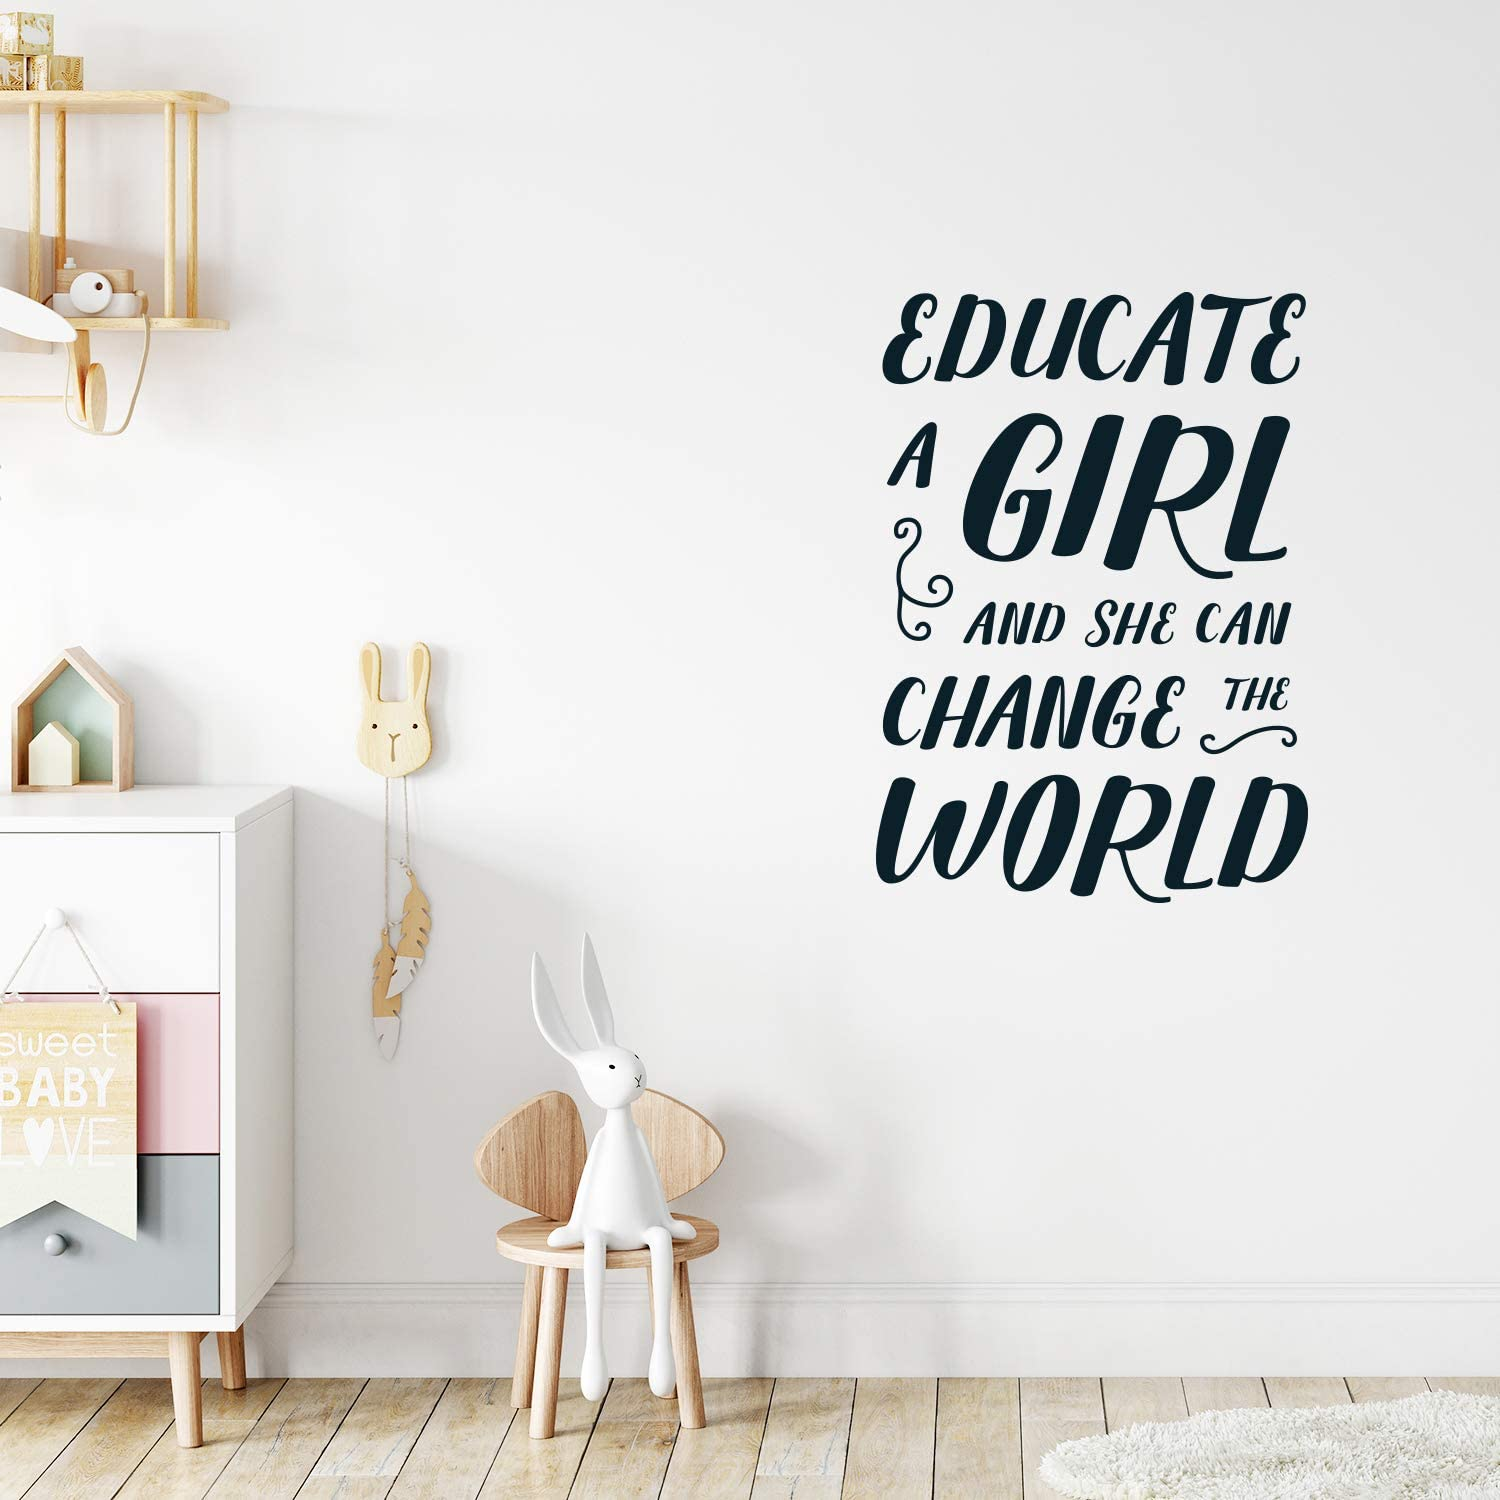 "Vinyl Wall Art Decal - Educate A Girl and She Can Change The World - 33"" x 23"" - Teen Girl Bedroom Little Girls Nursery Wall Decor Sticker Decals- Women's Empowerement Motivational Quote Sayings"